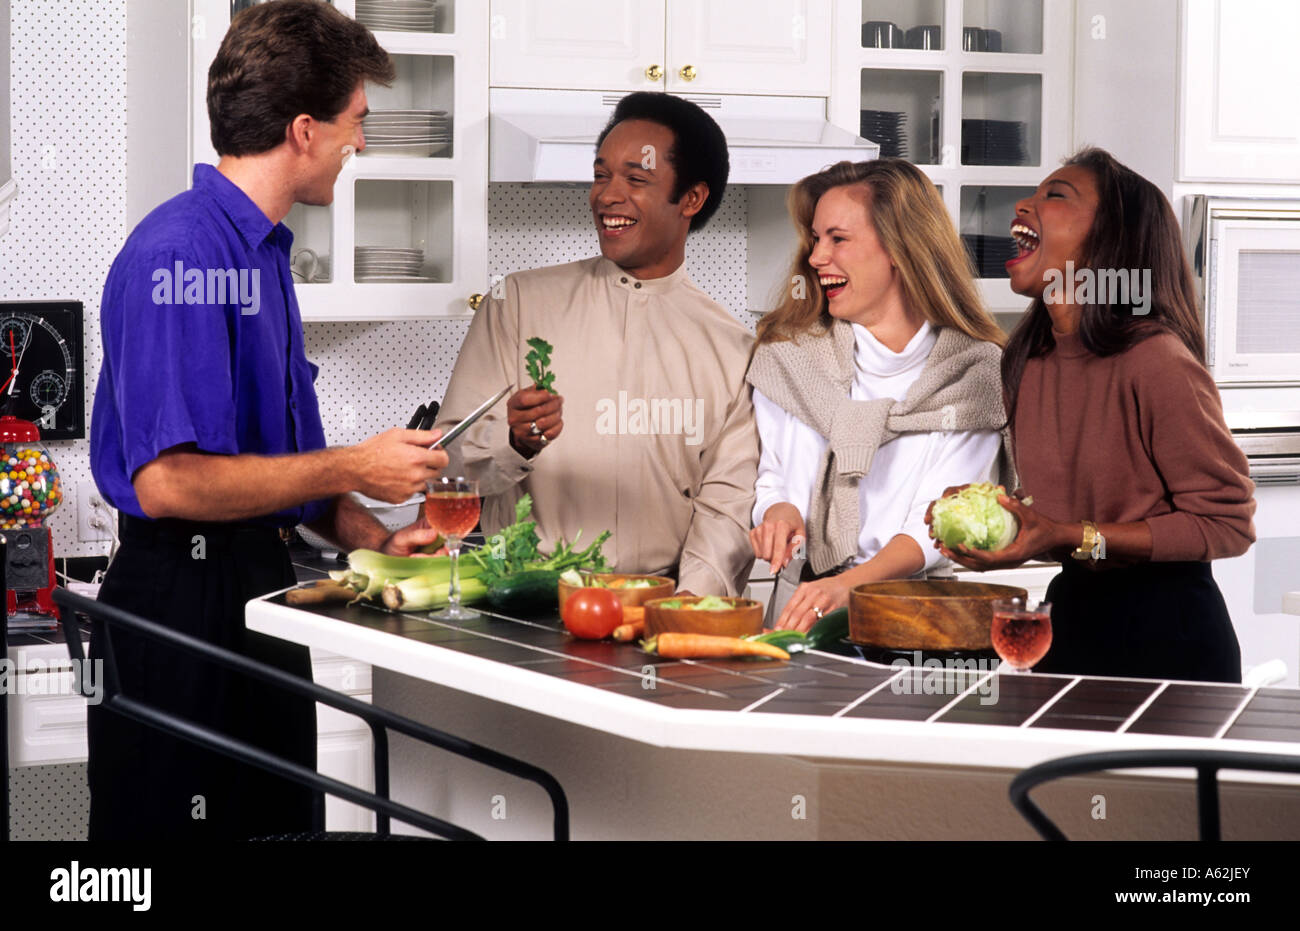 Black and white couples dating and relaxing at home cooking in kitchen - Stock Image